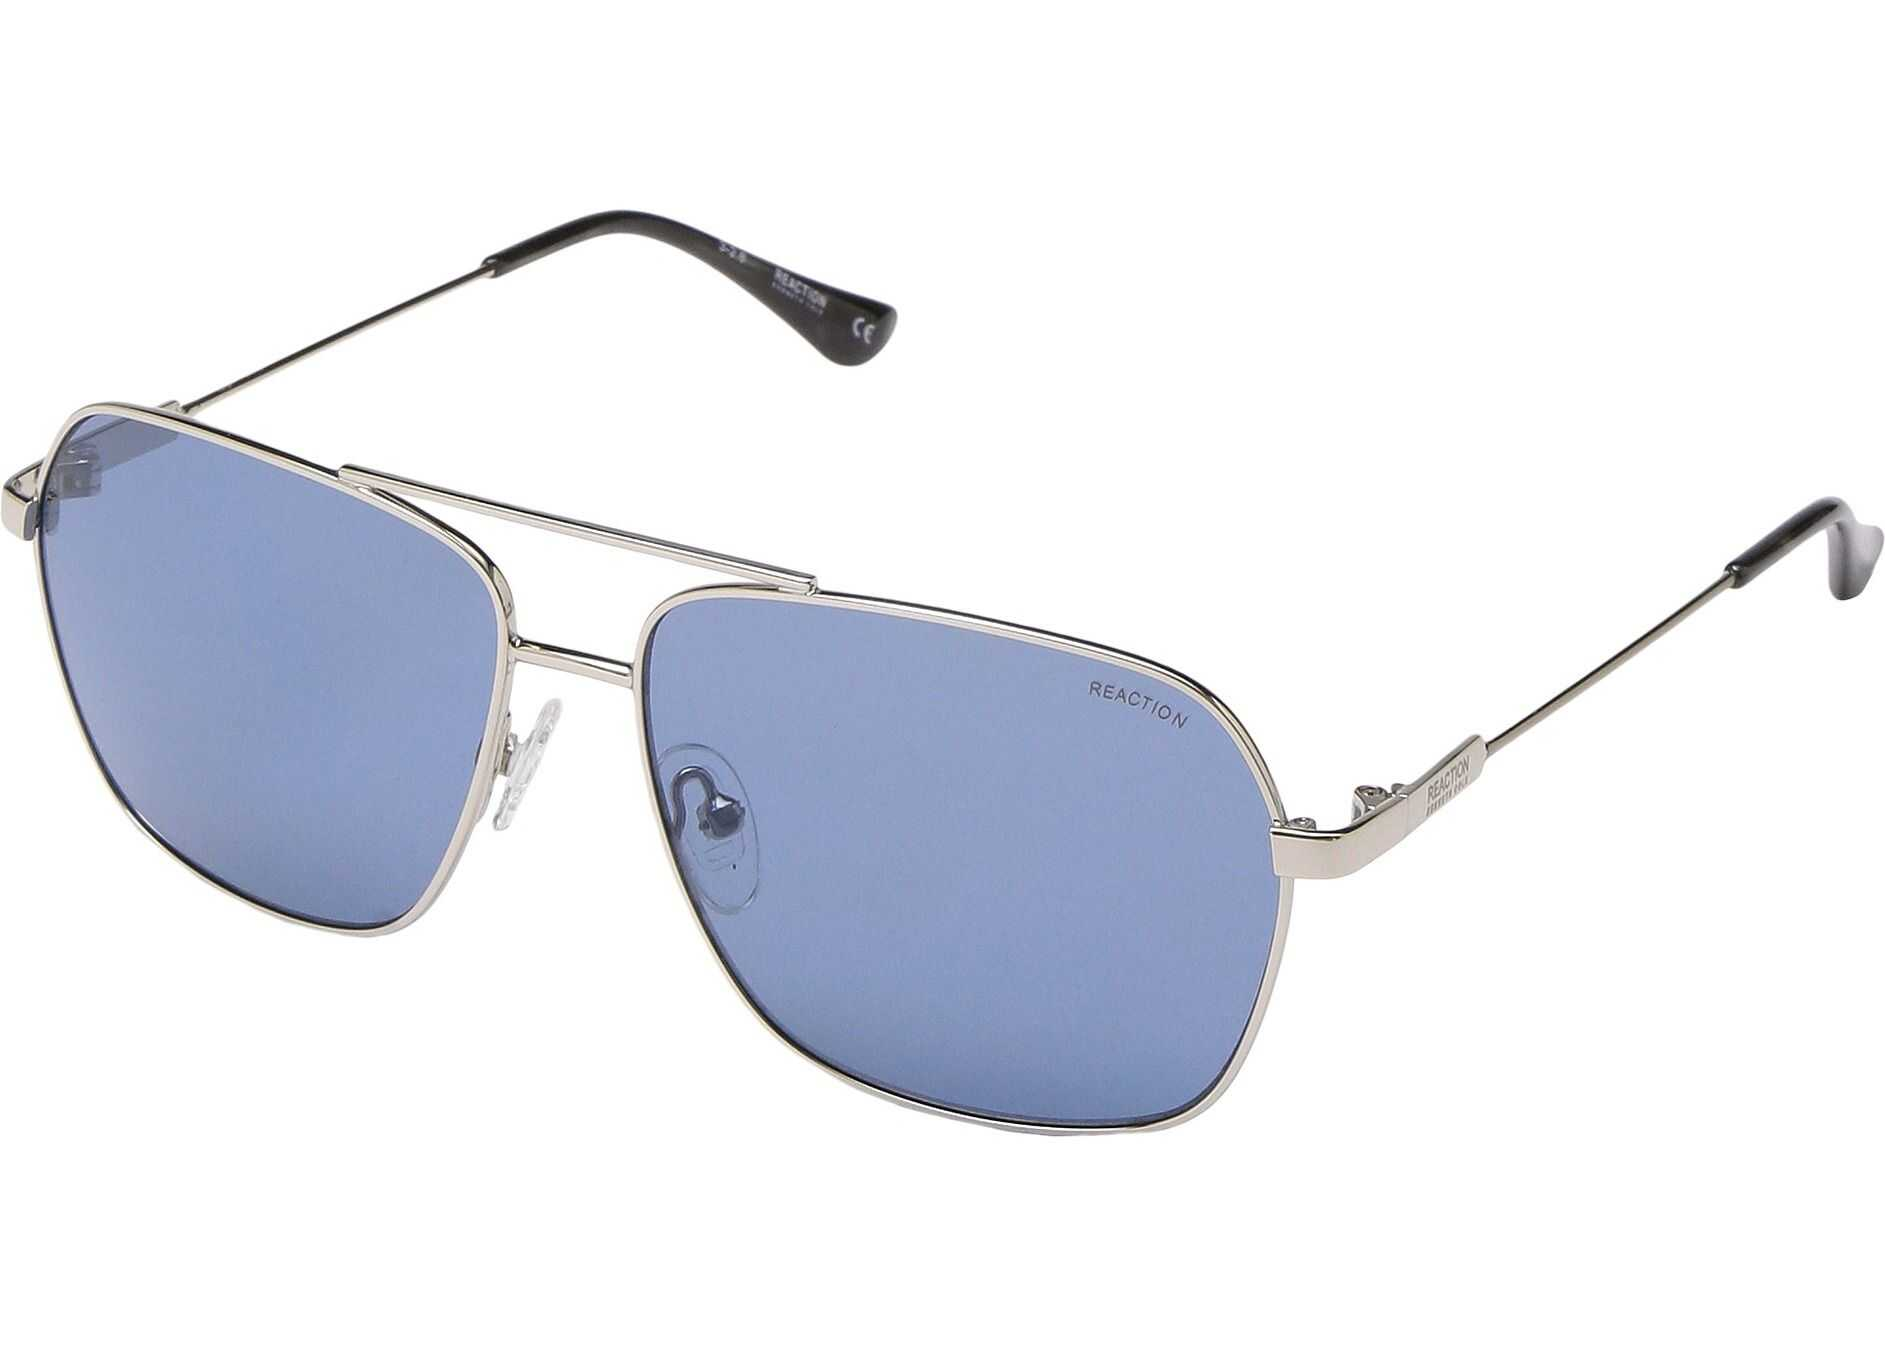 Kenneth Cole Reaction KC2868 Shiny Light Nickeltin/Blue